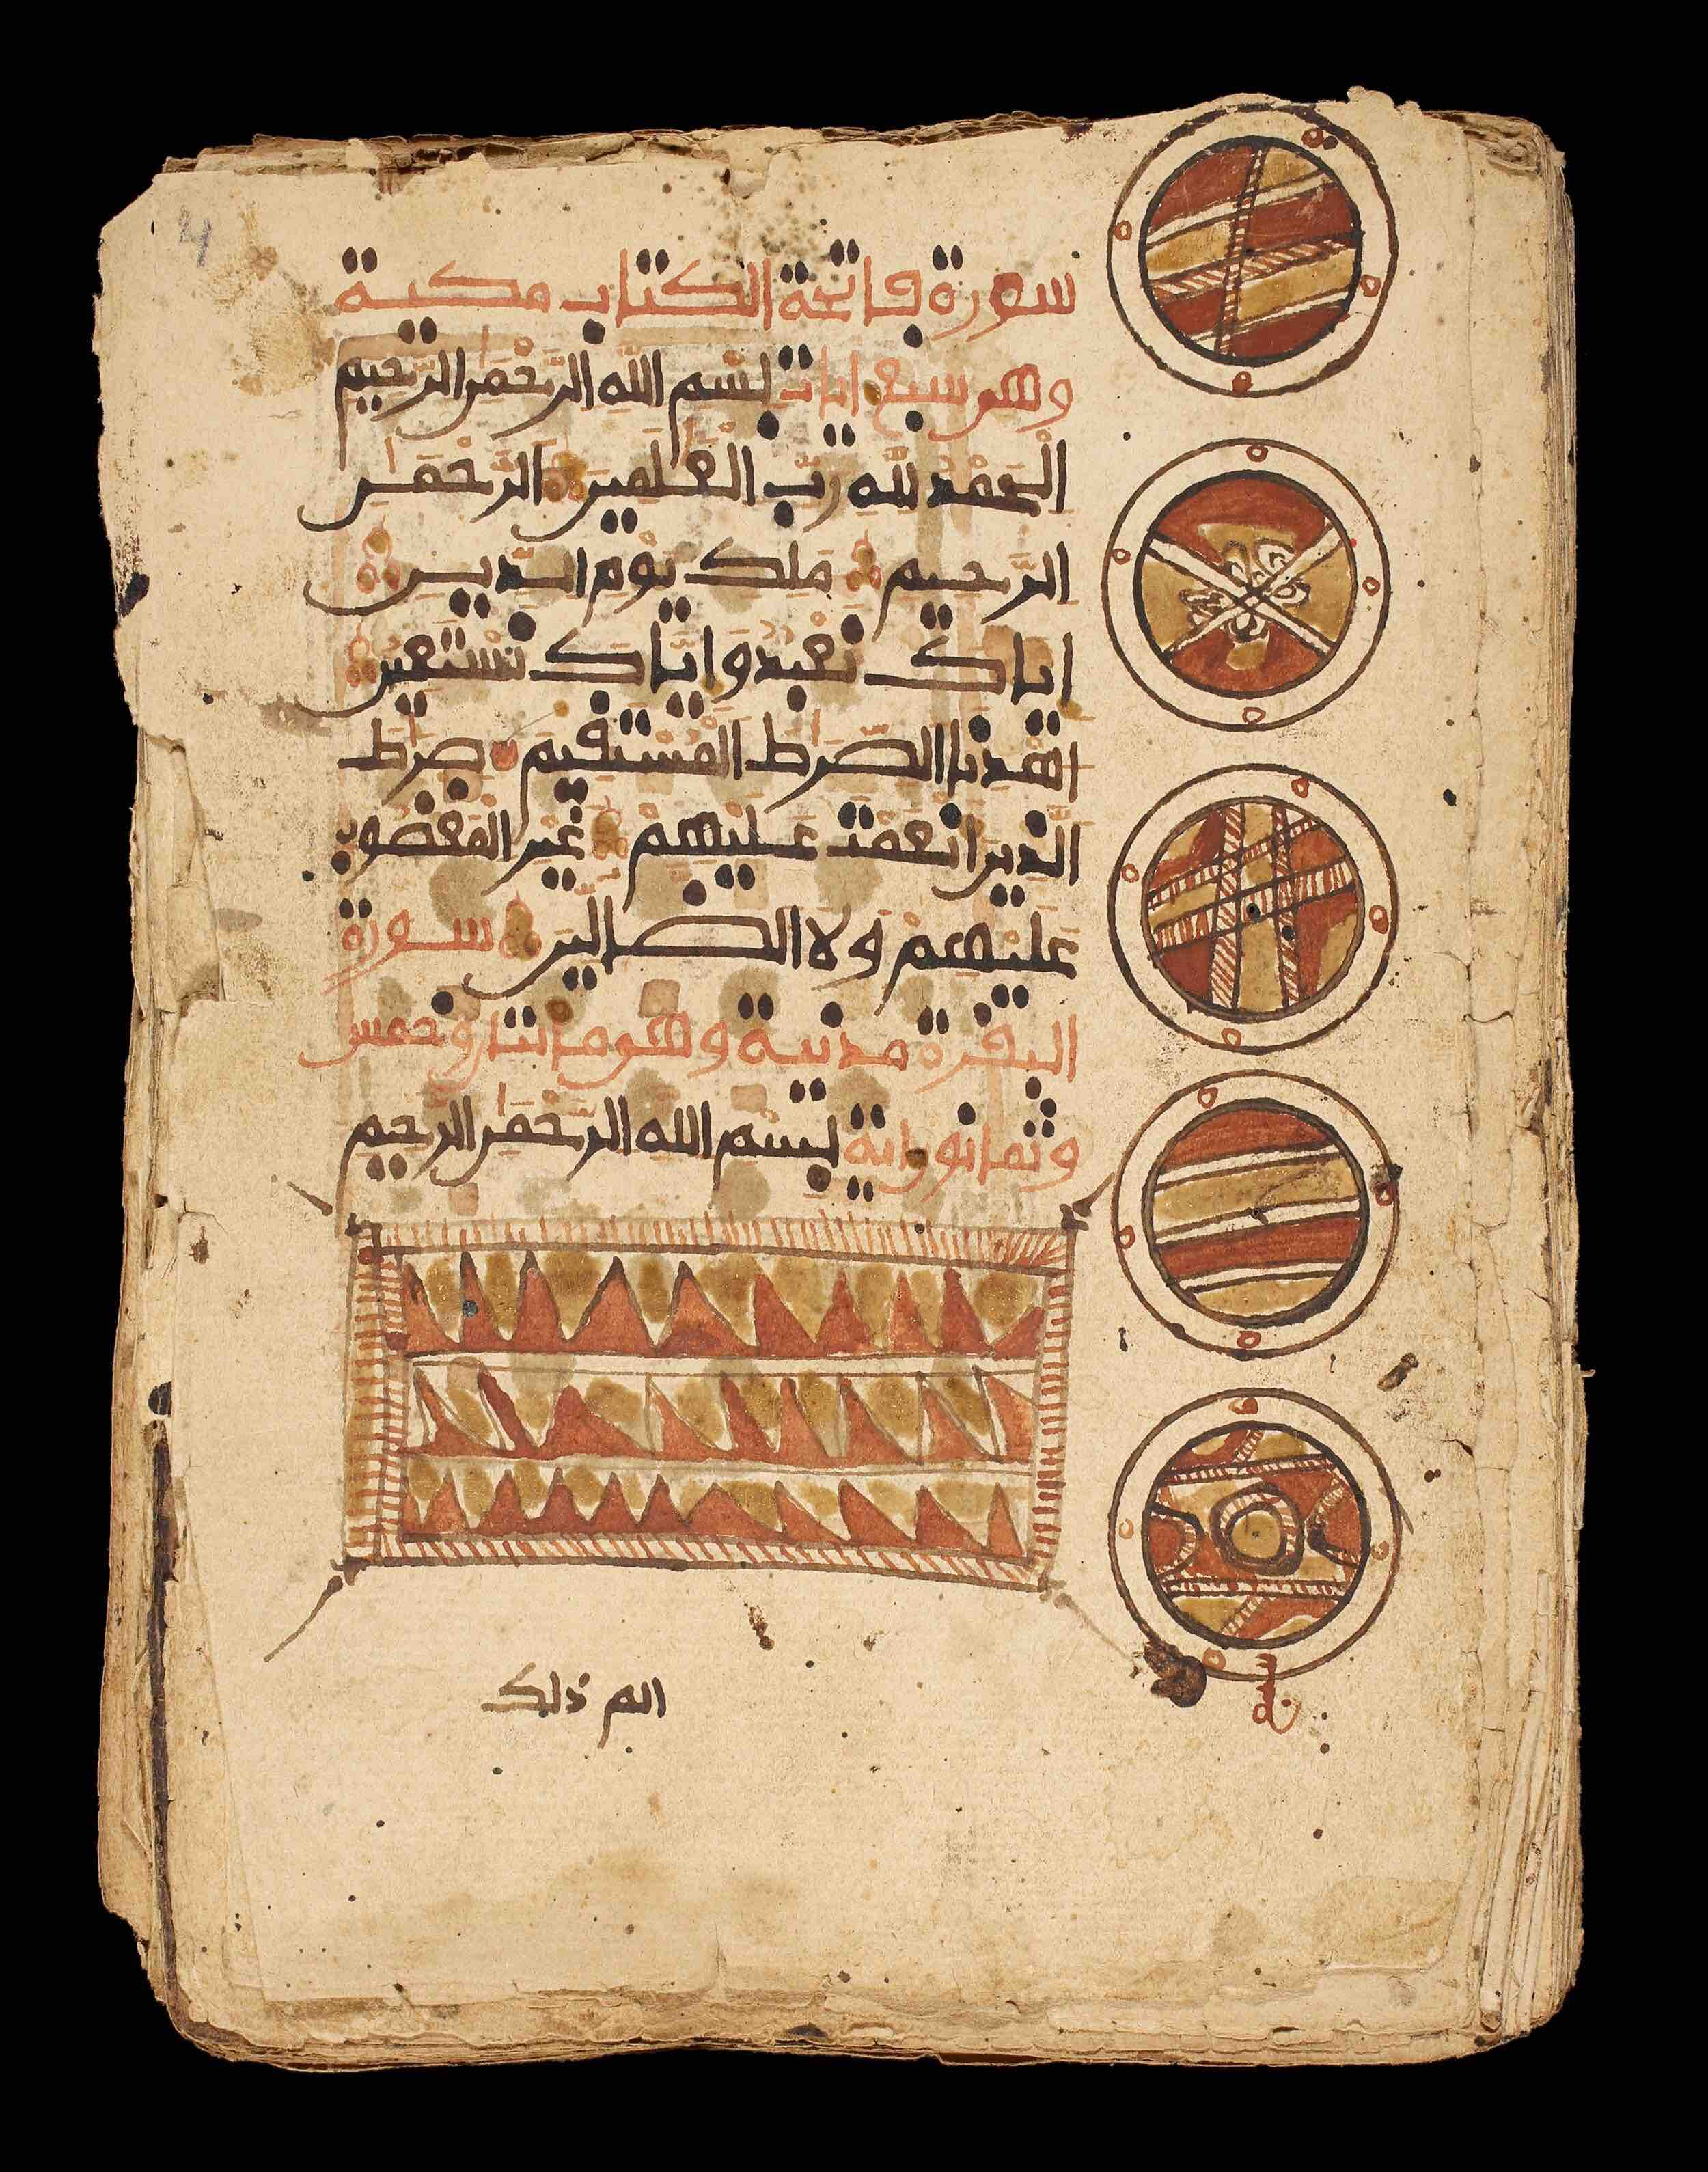 Manuscript from the Aboubacar Bin Said Library, Timbuktu (<a href='https://w3id.org/vhmml/readingRoom/view/142154'>SAV ABS 312</a>)